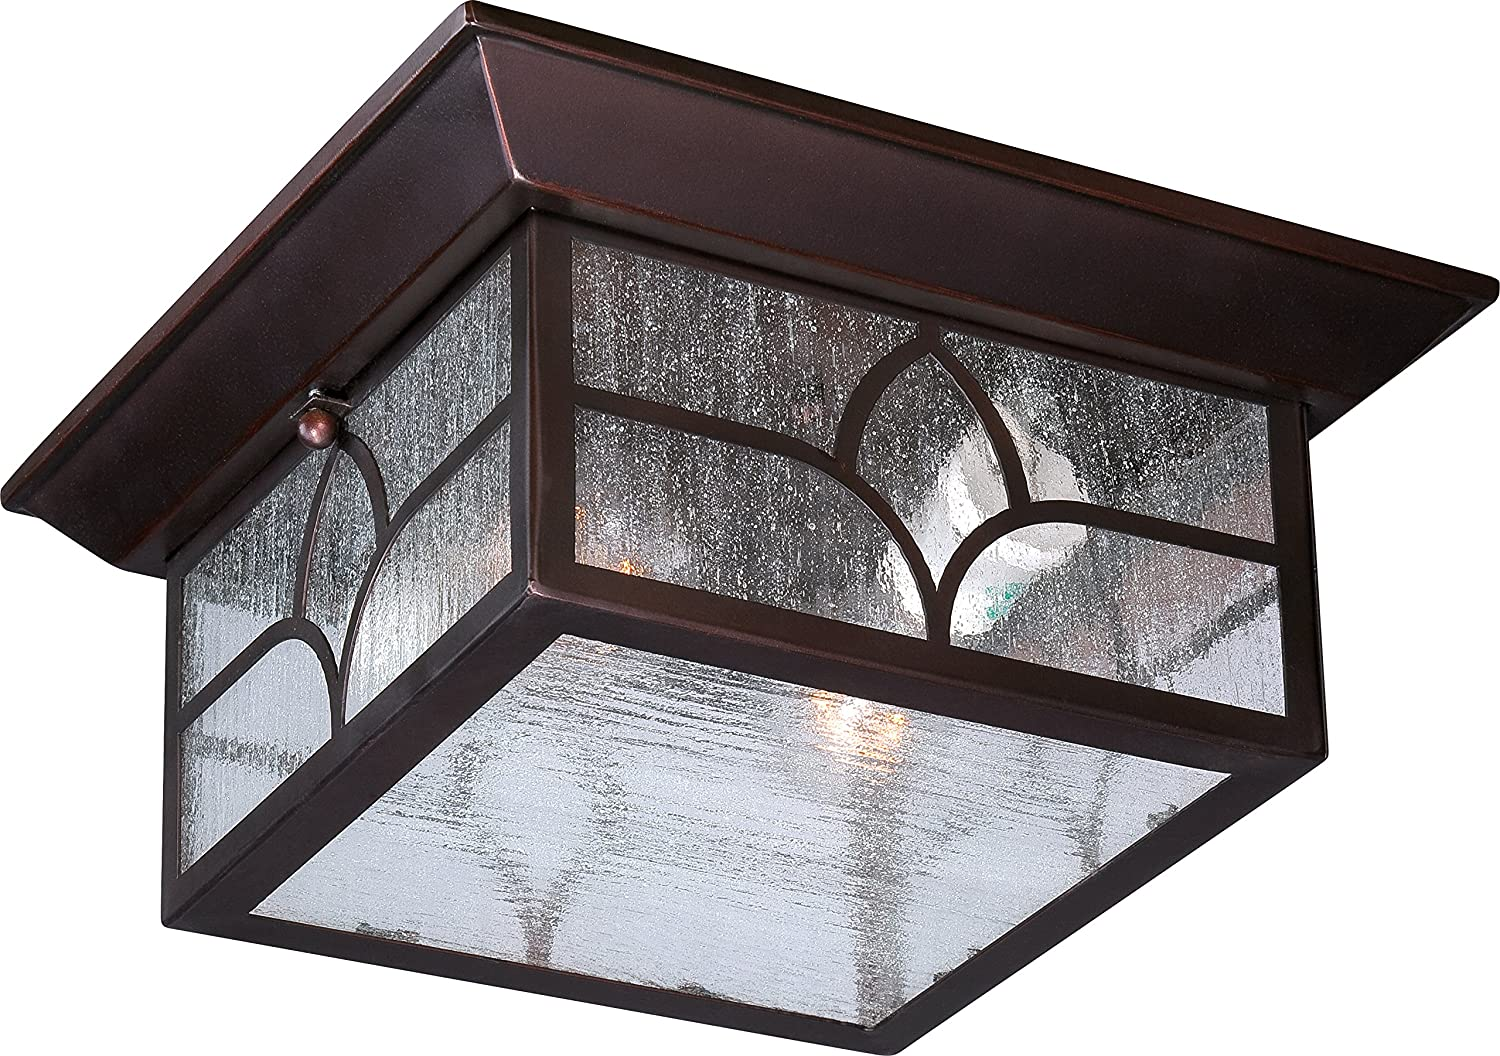 Nuvo Lighting 60/5646 Stanton Flush 2 Light 60-watt A19 Outdoor Close to Ceiling Porch and Patio Lighting with Clear Seeded Glass, Claret Bronze by Nuvo Lighting  B00LG0X3X4